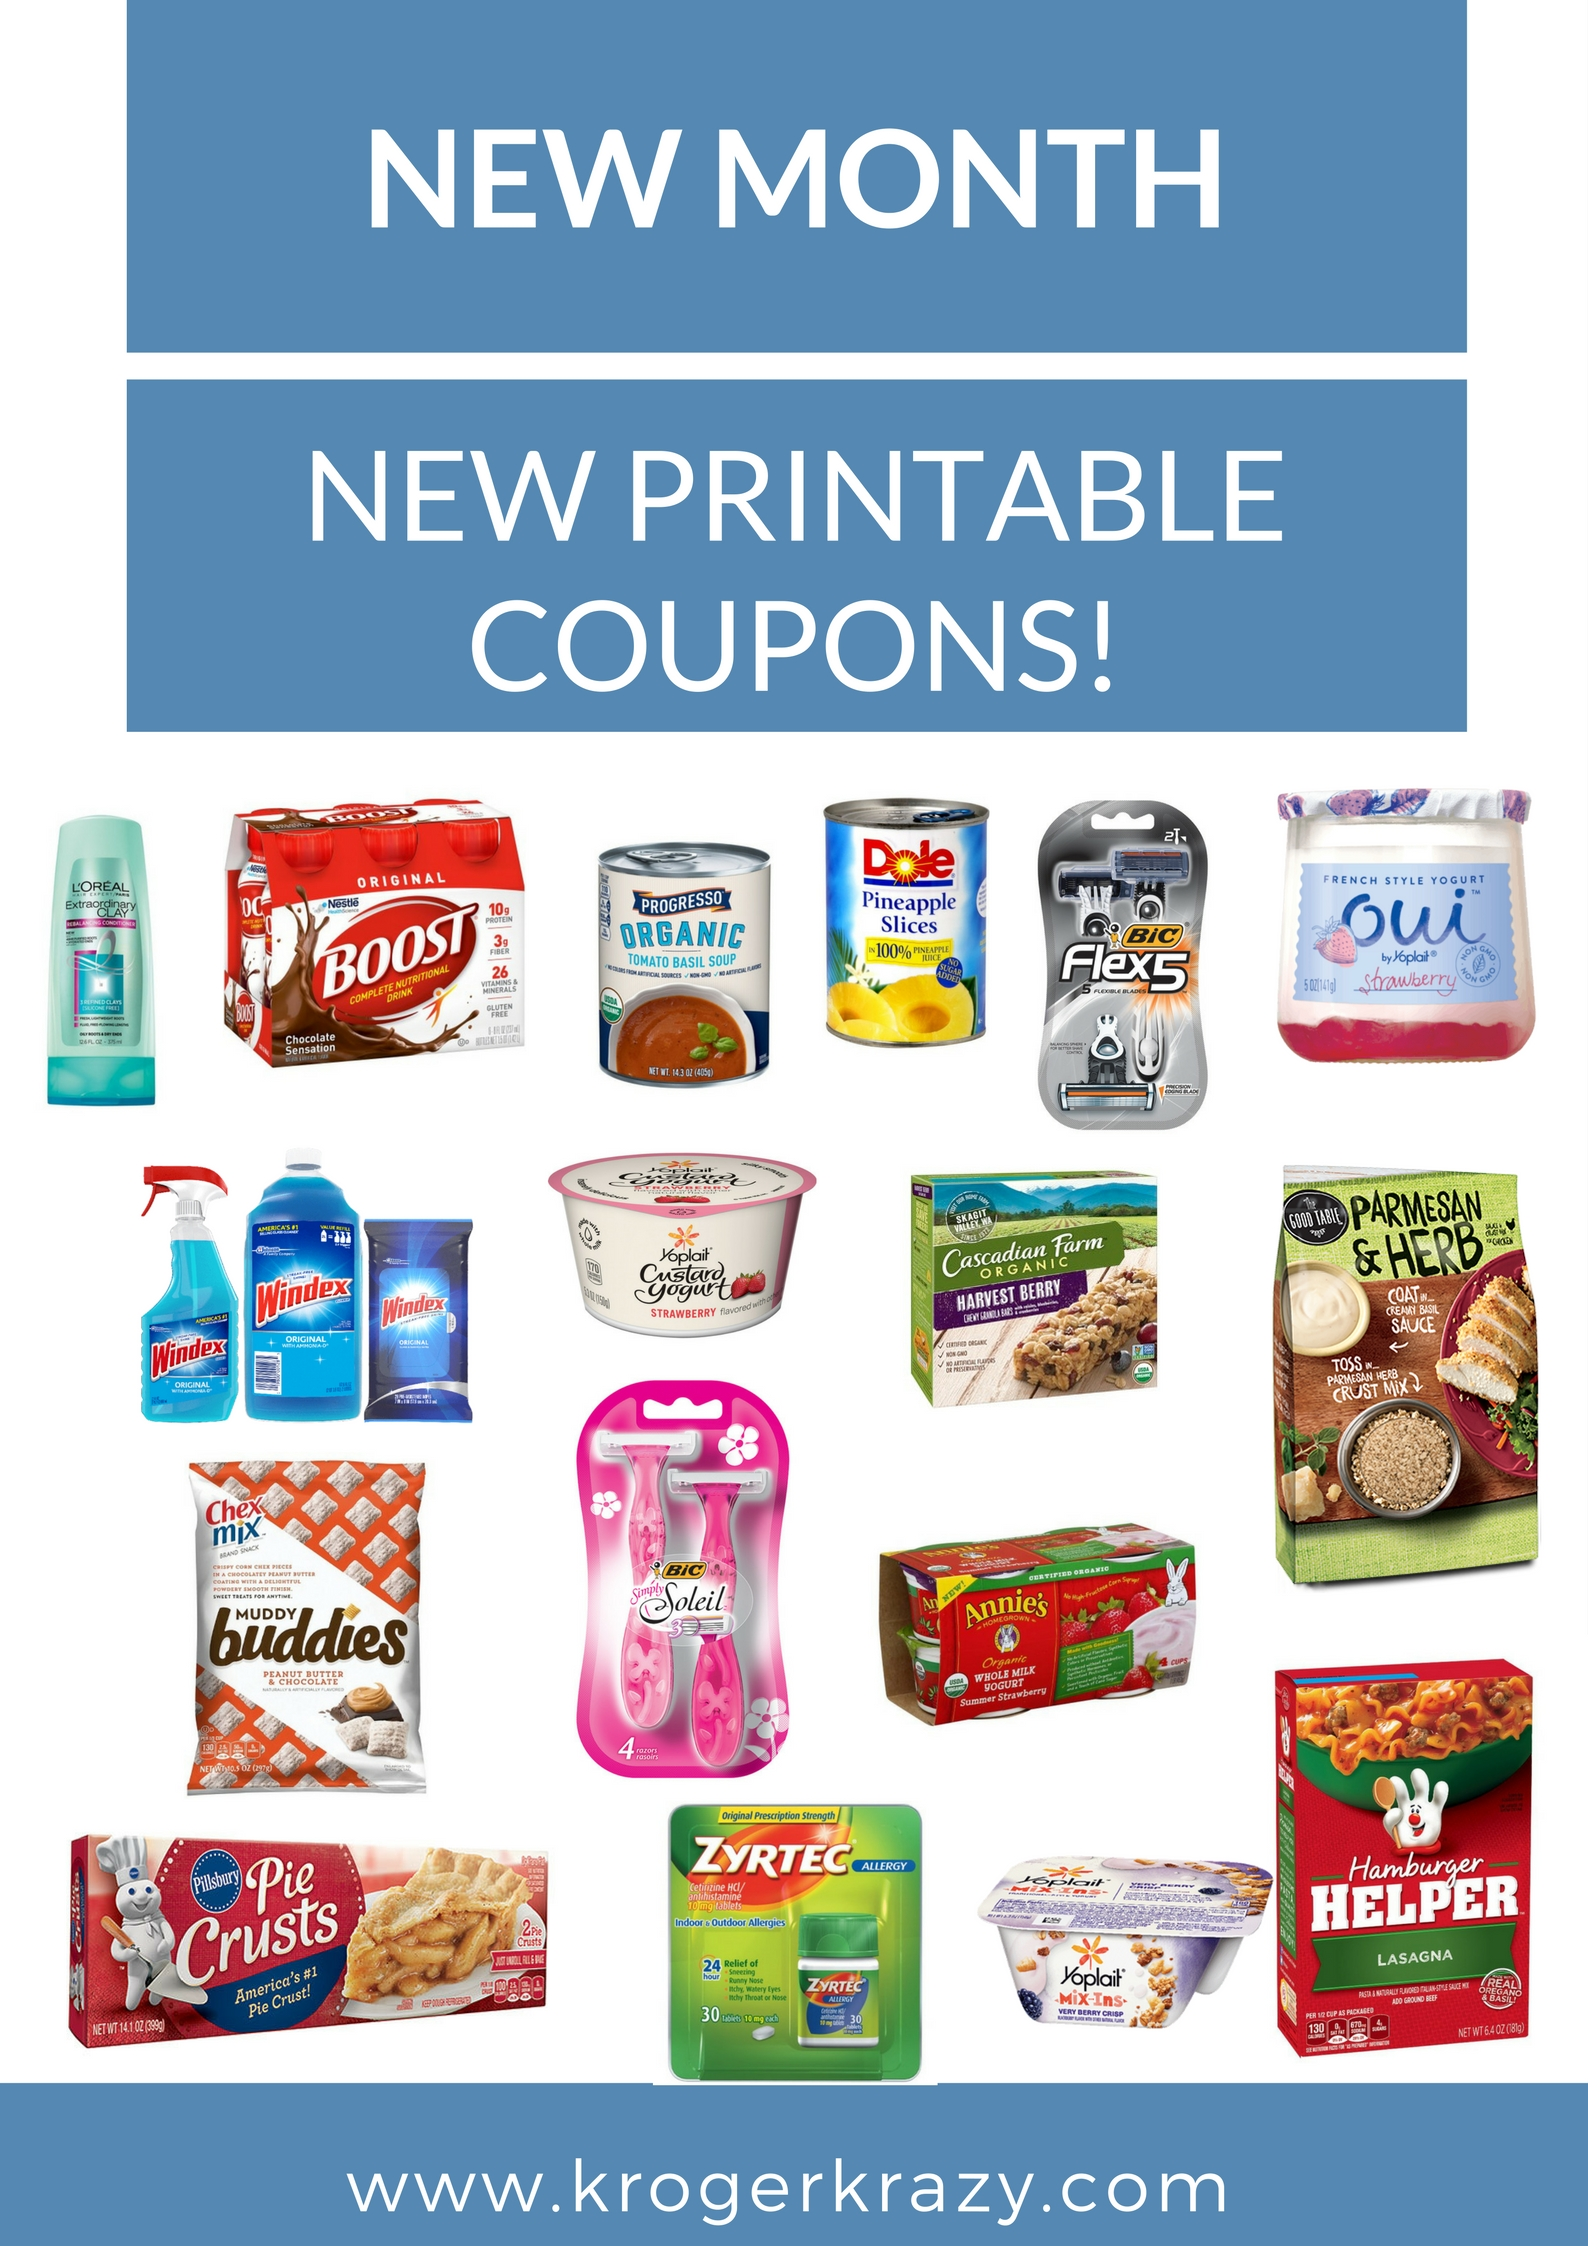 photograph regarding Yoplait Printable Coupon titled Contemporary Thirty day period! Fresh Printable Discount codes!!! Windex, Yoplait